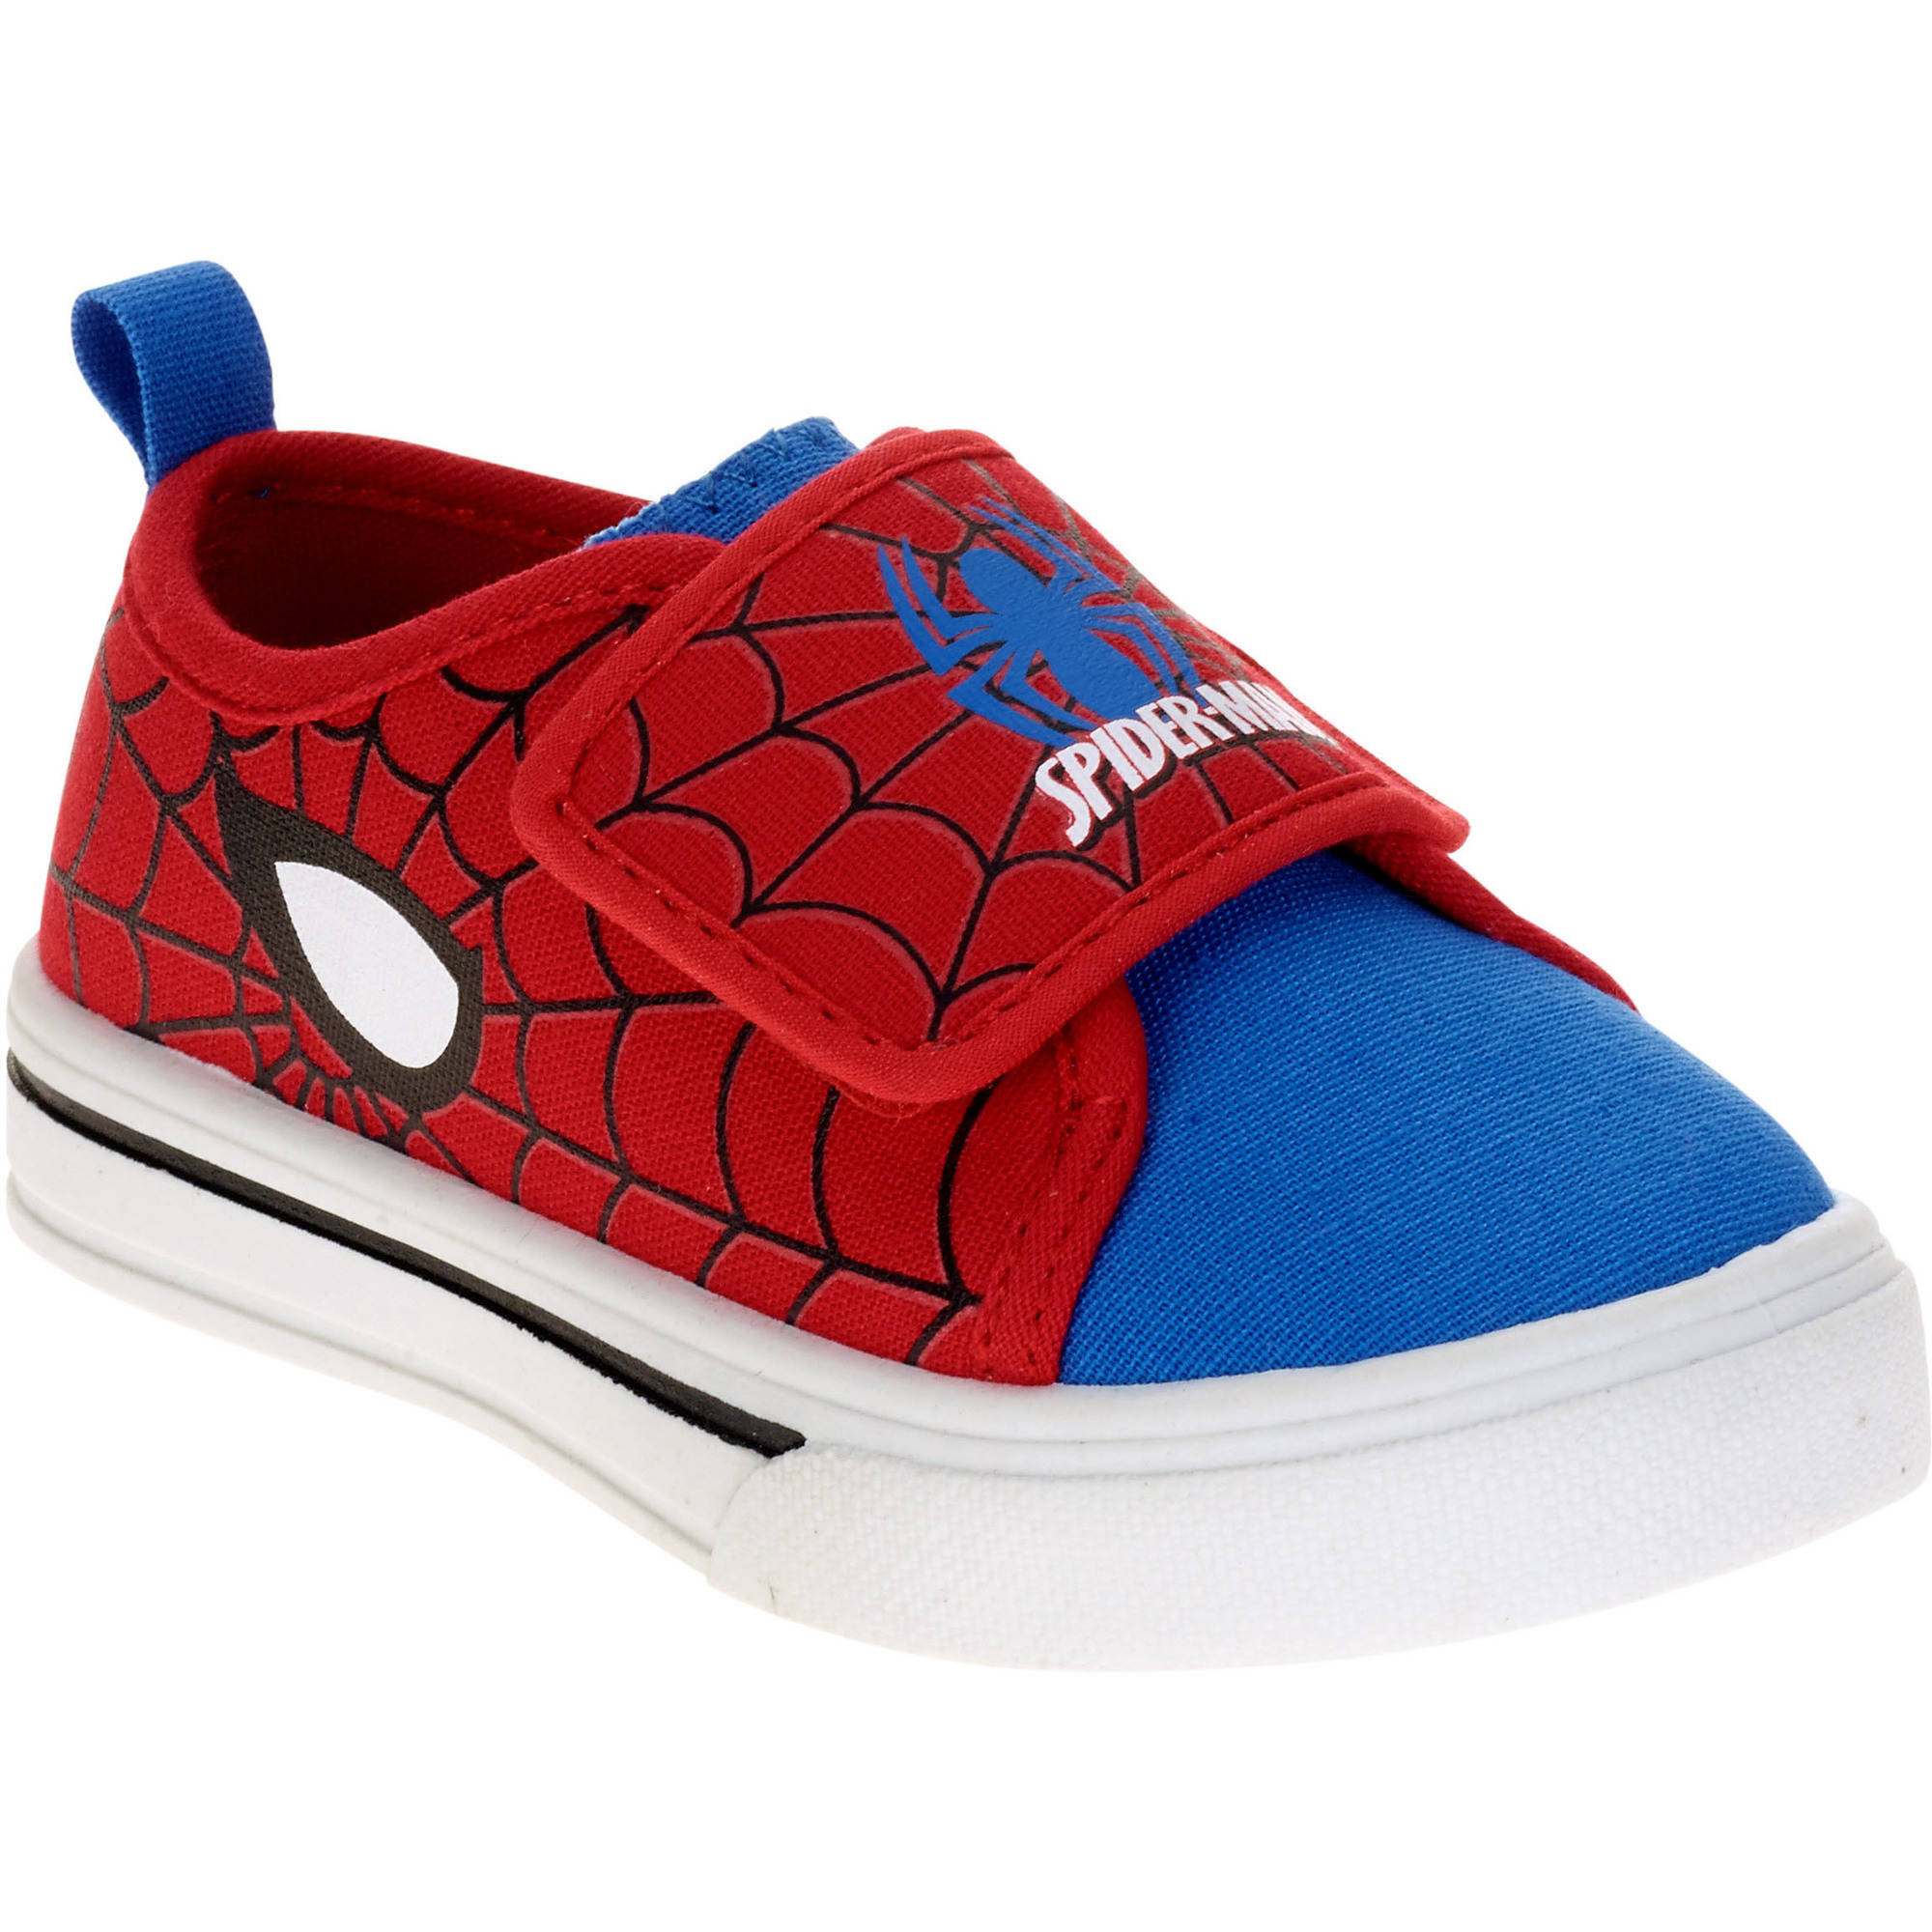 spider toddler boys canvas casual shoe walmart